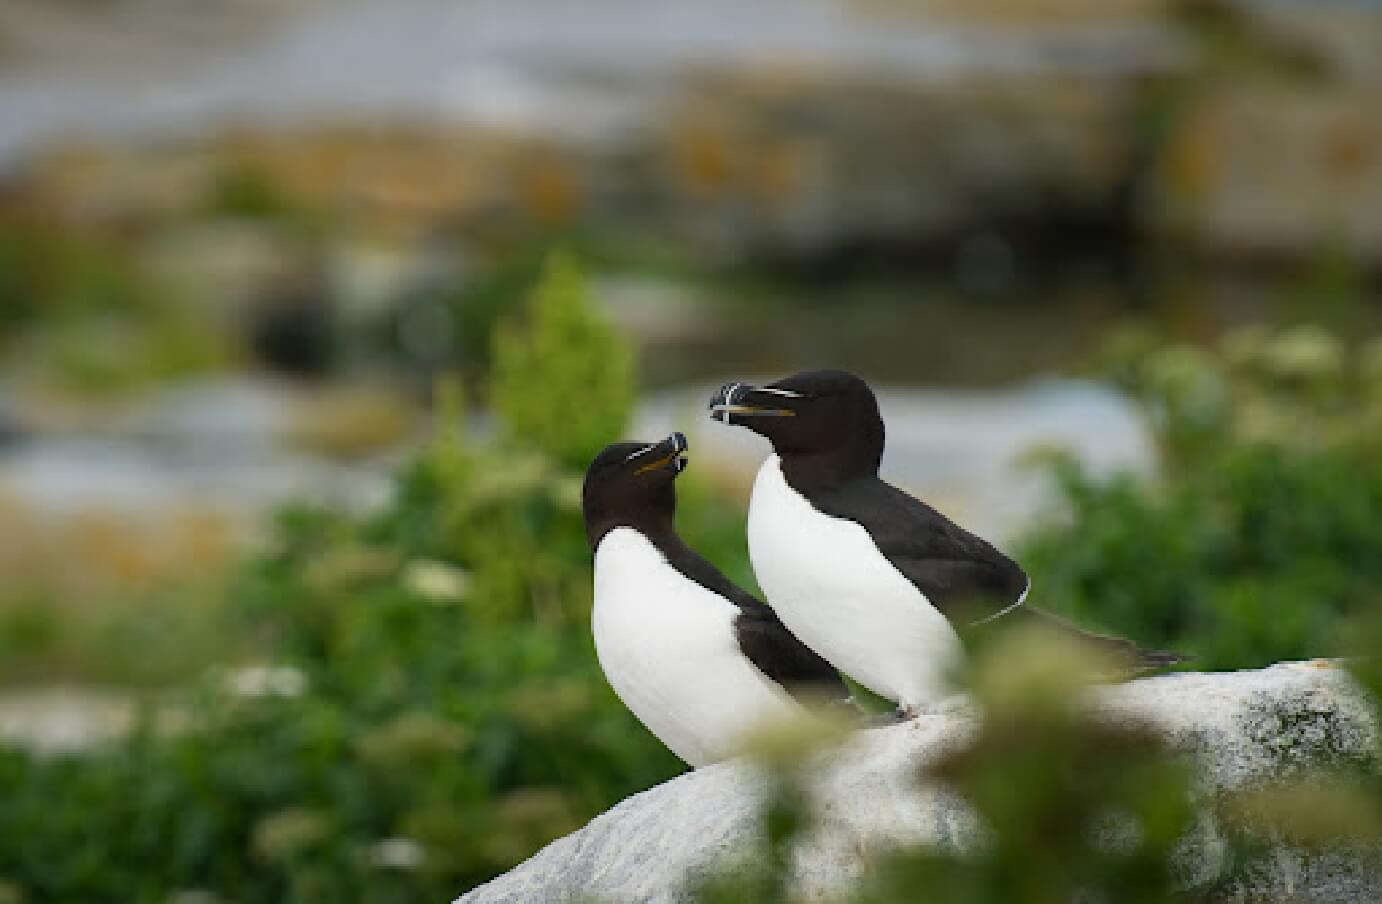 Photo of two Great Auk's in the wild, perched on a rock